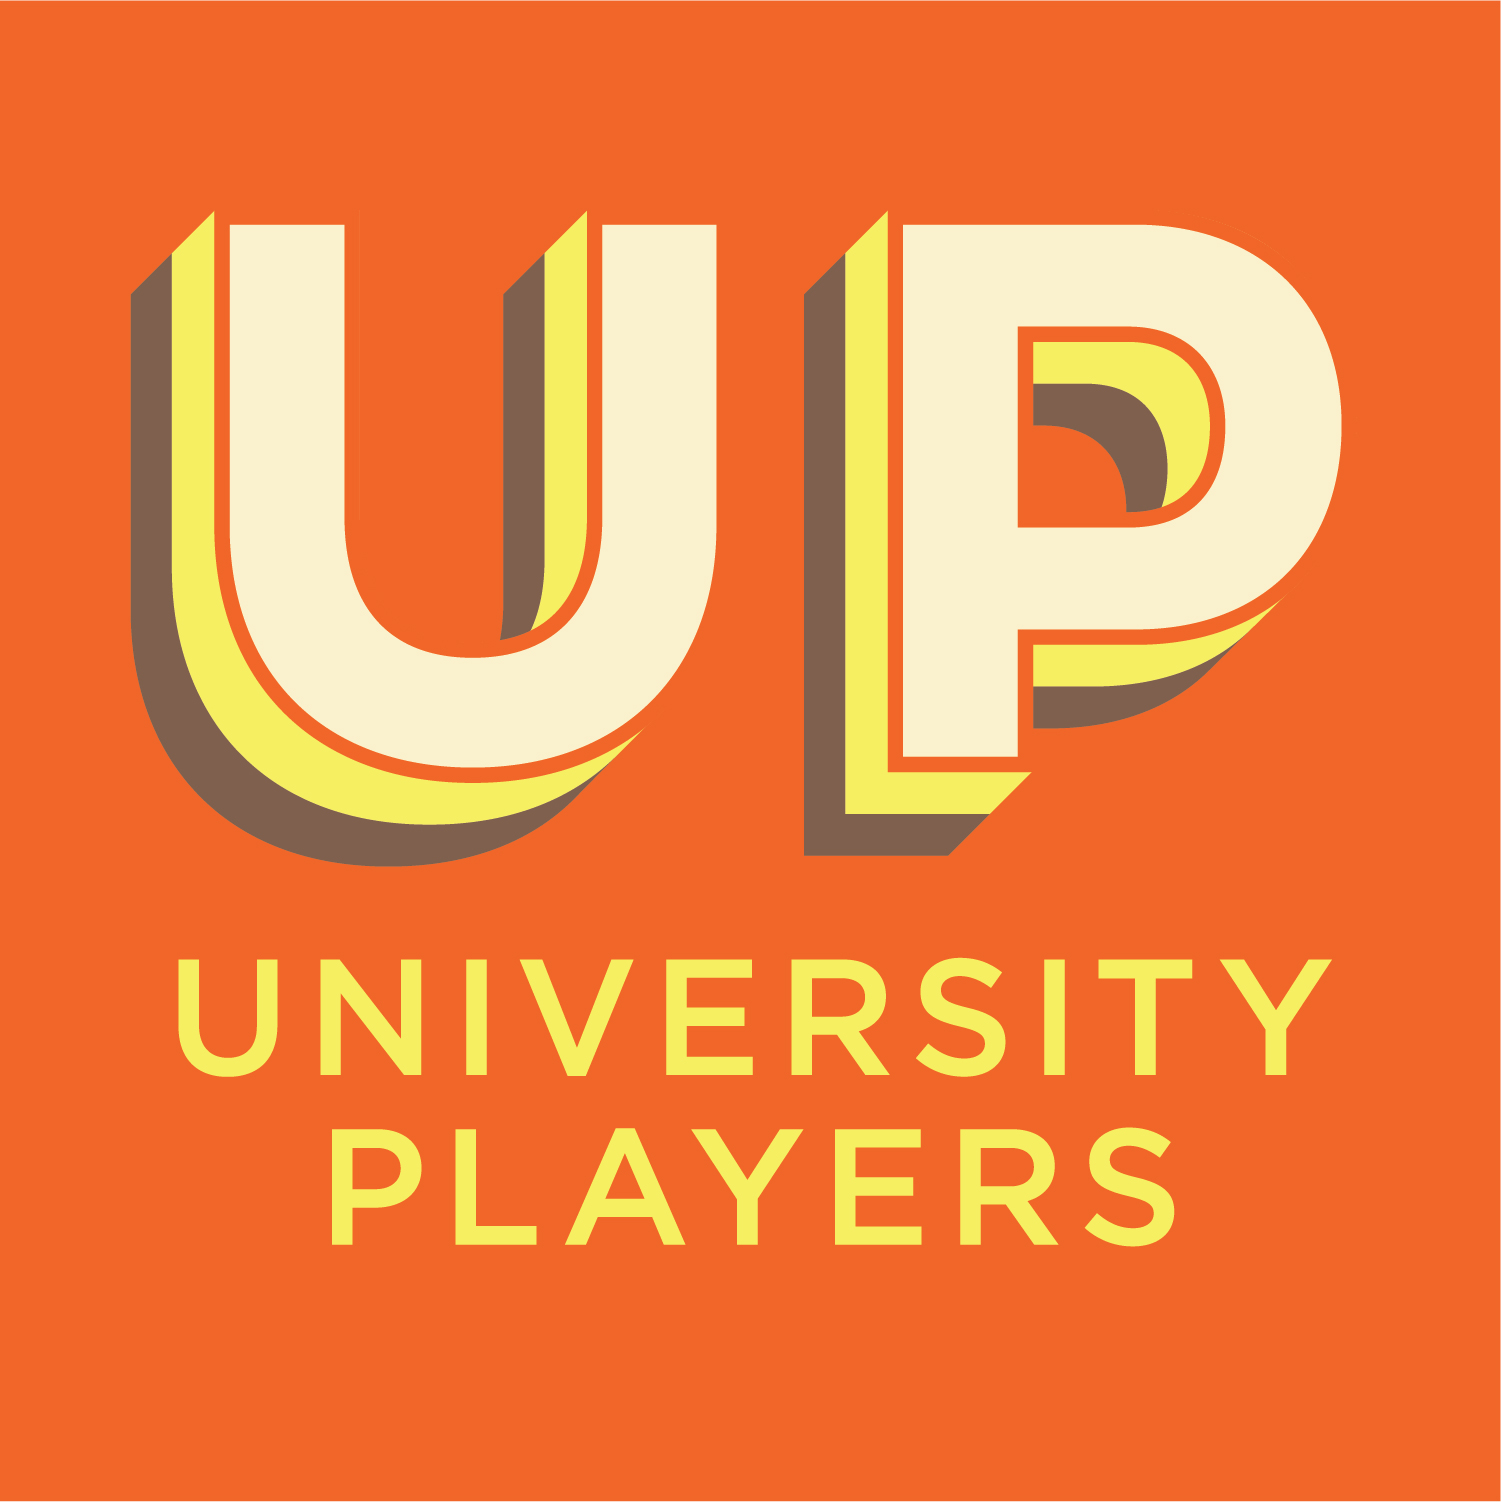 University Players Logo in Orange